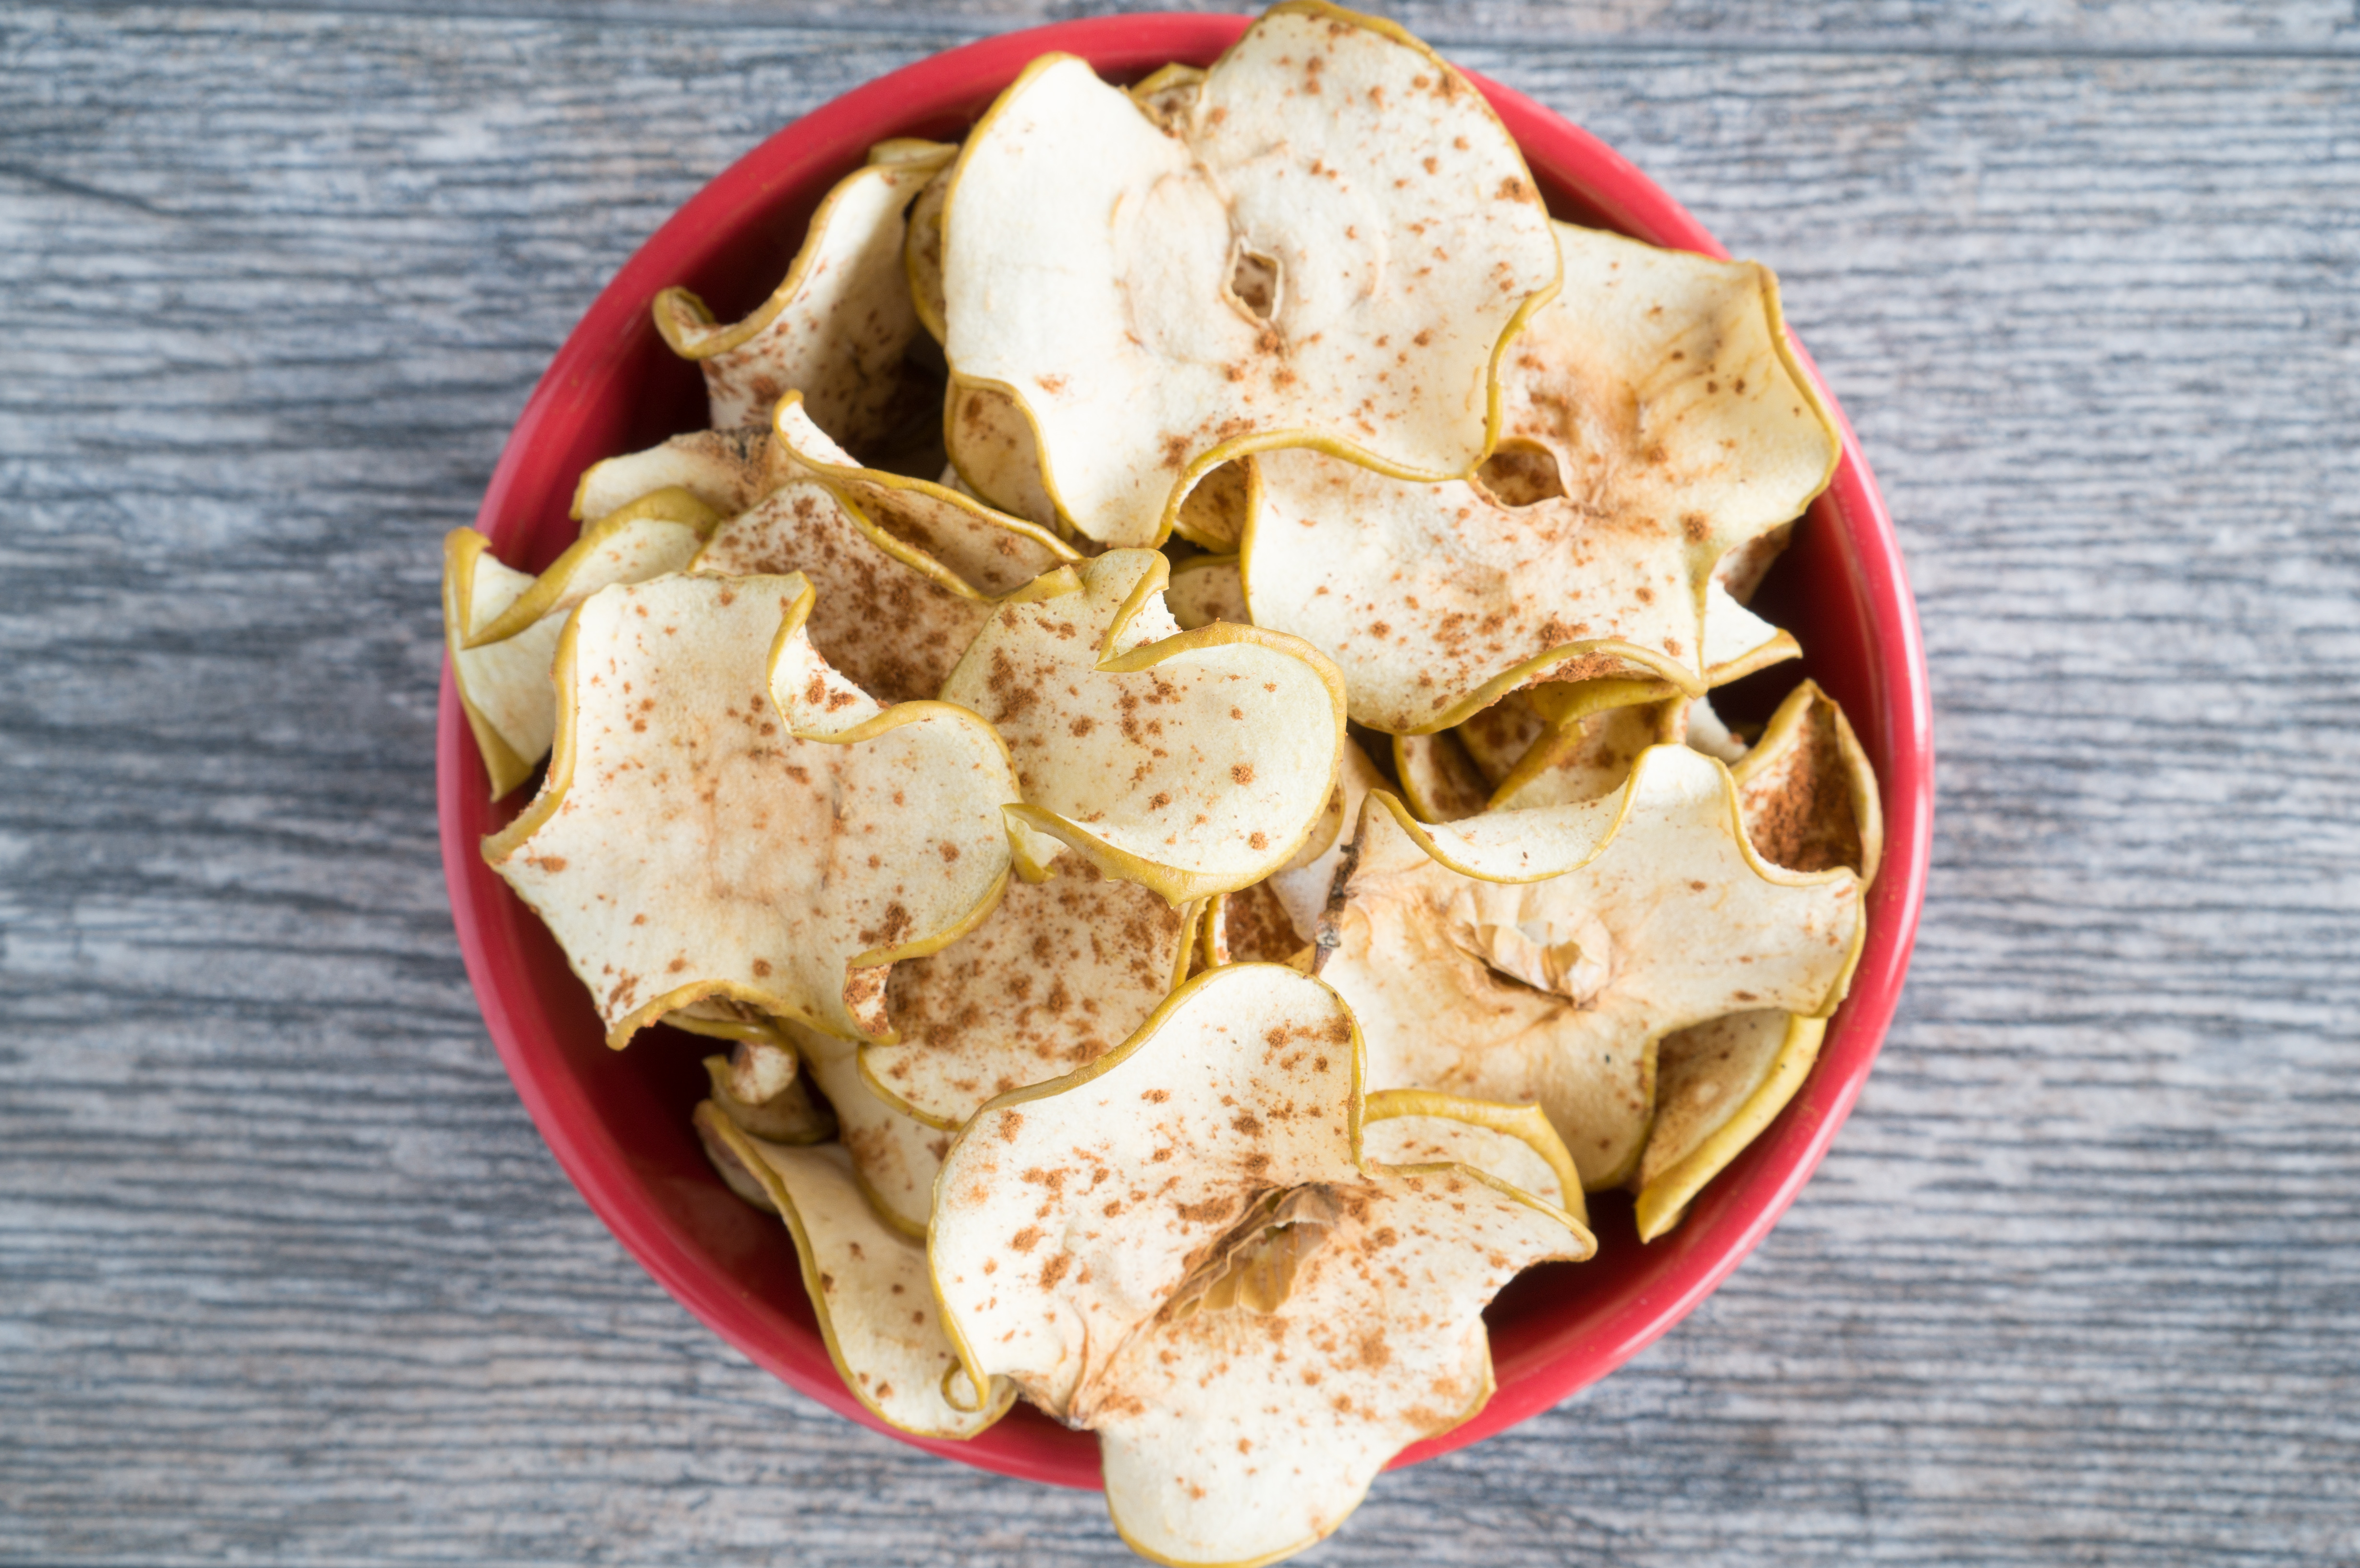 Cinnamon Spiced Apple Chips - Simple, 2-ingredient recipe for homemade Cinnamon Spiced Apple Chips. We love that this naturally sweet, healthy snack uses only whole apples and a sprinkle of cinnamon! Paleo-friendly, gluten-free, sugar-free & vegan ♥ | freeyourfork.com